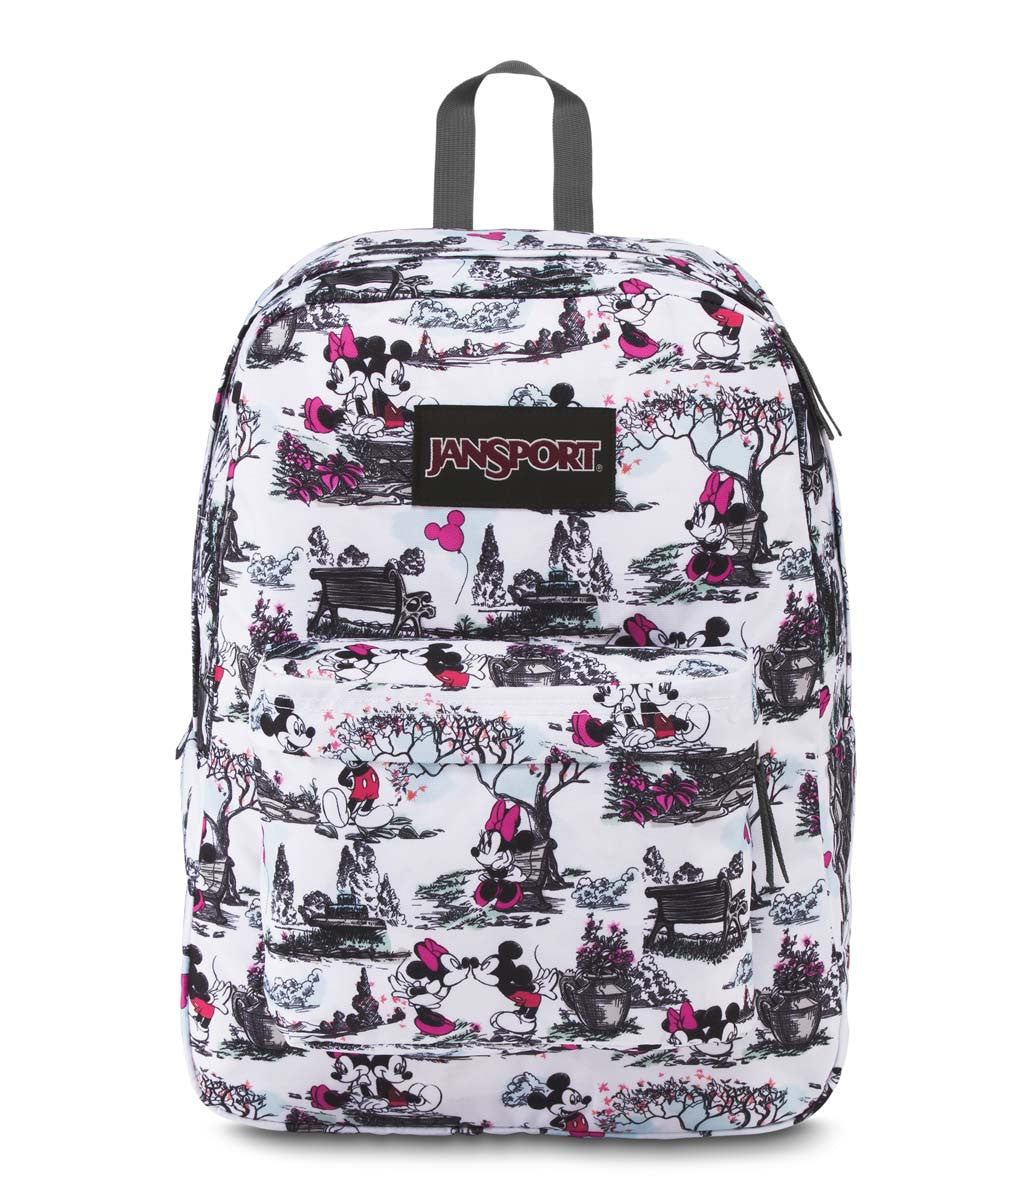 2821fd51424 Jansport Disney Superbreak 25l Backpack